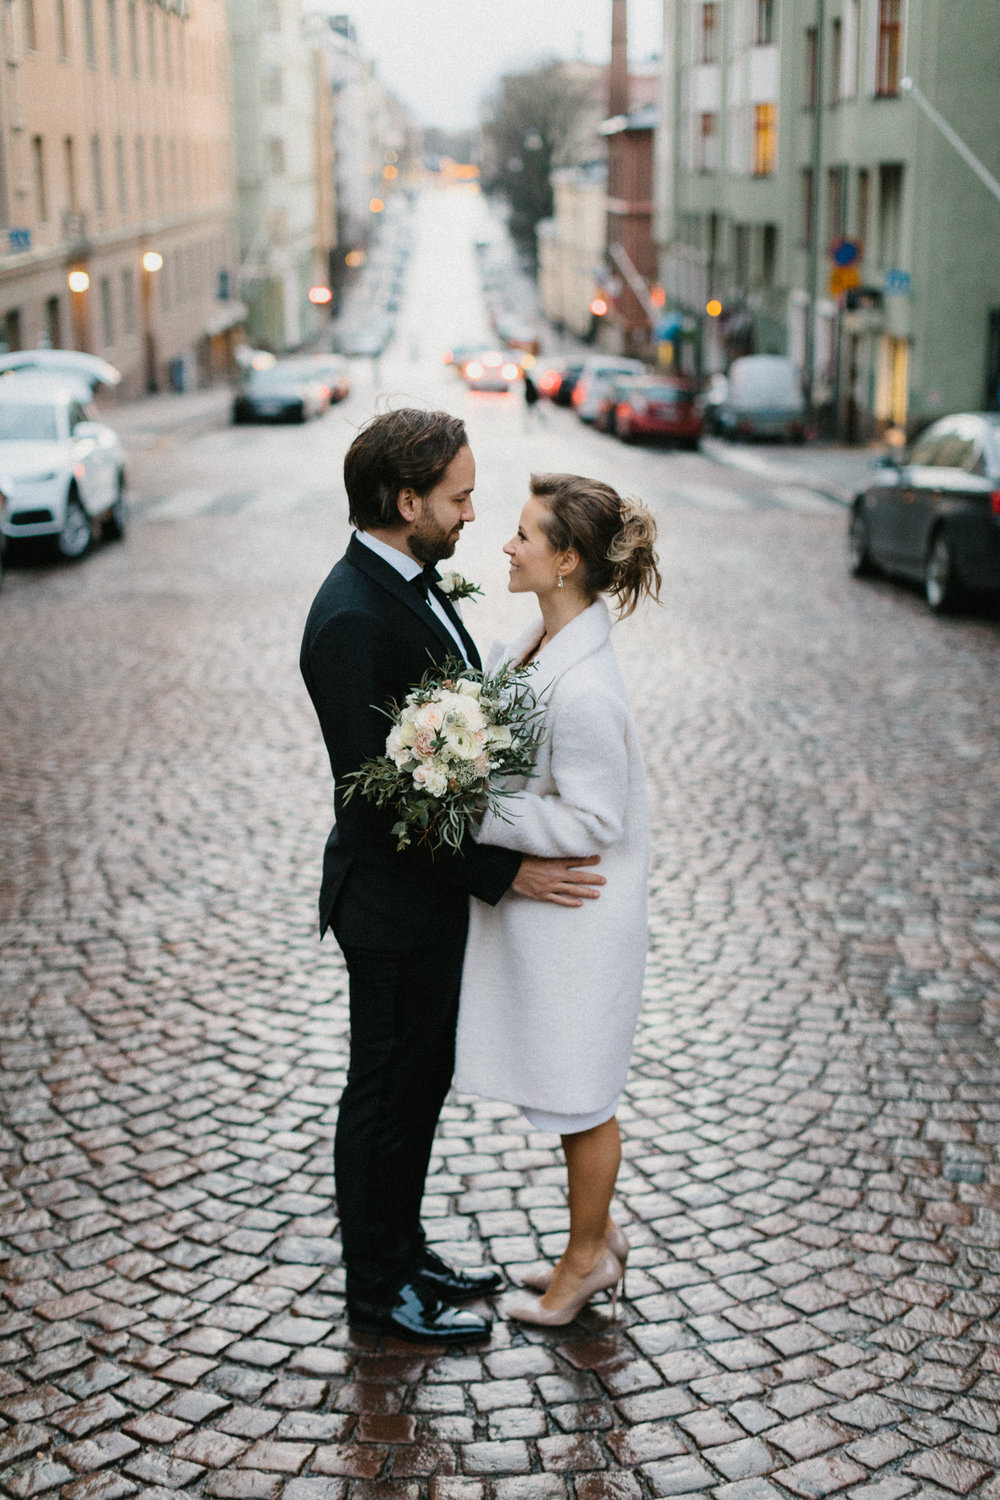 Maria + Topi | Photo by Patrick Karkkolainen Wedding Photographer | Helsinki Wedding Photographer-66.jpg